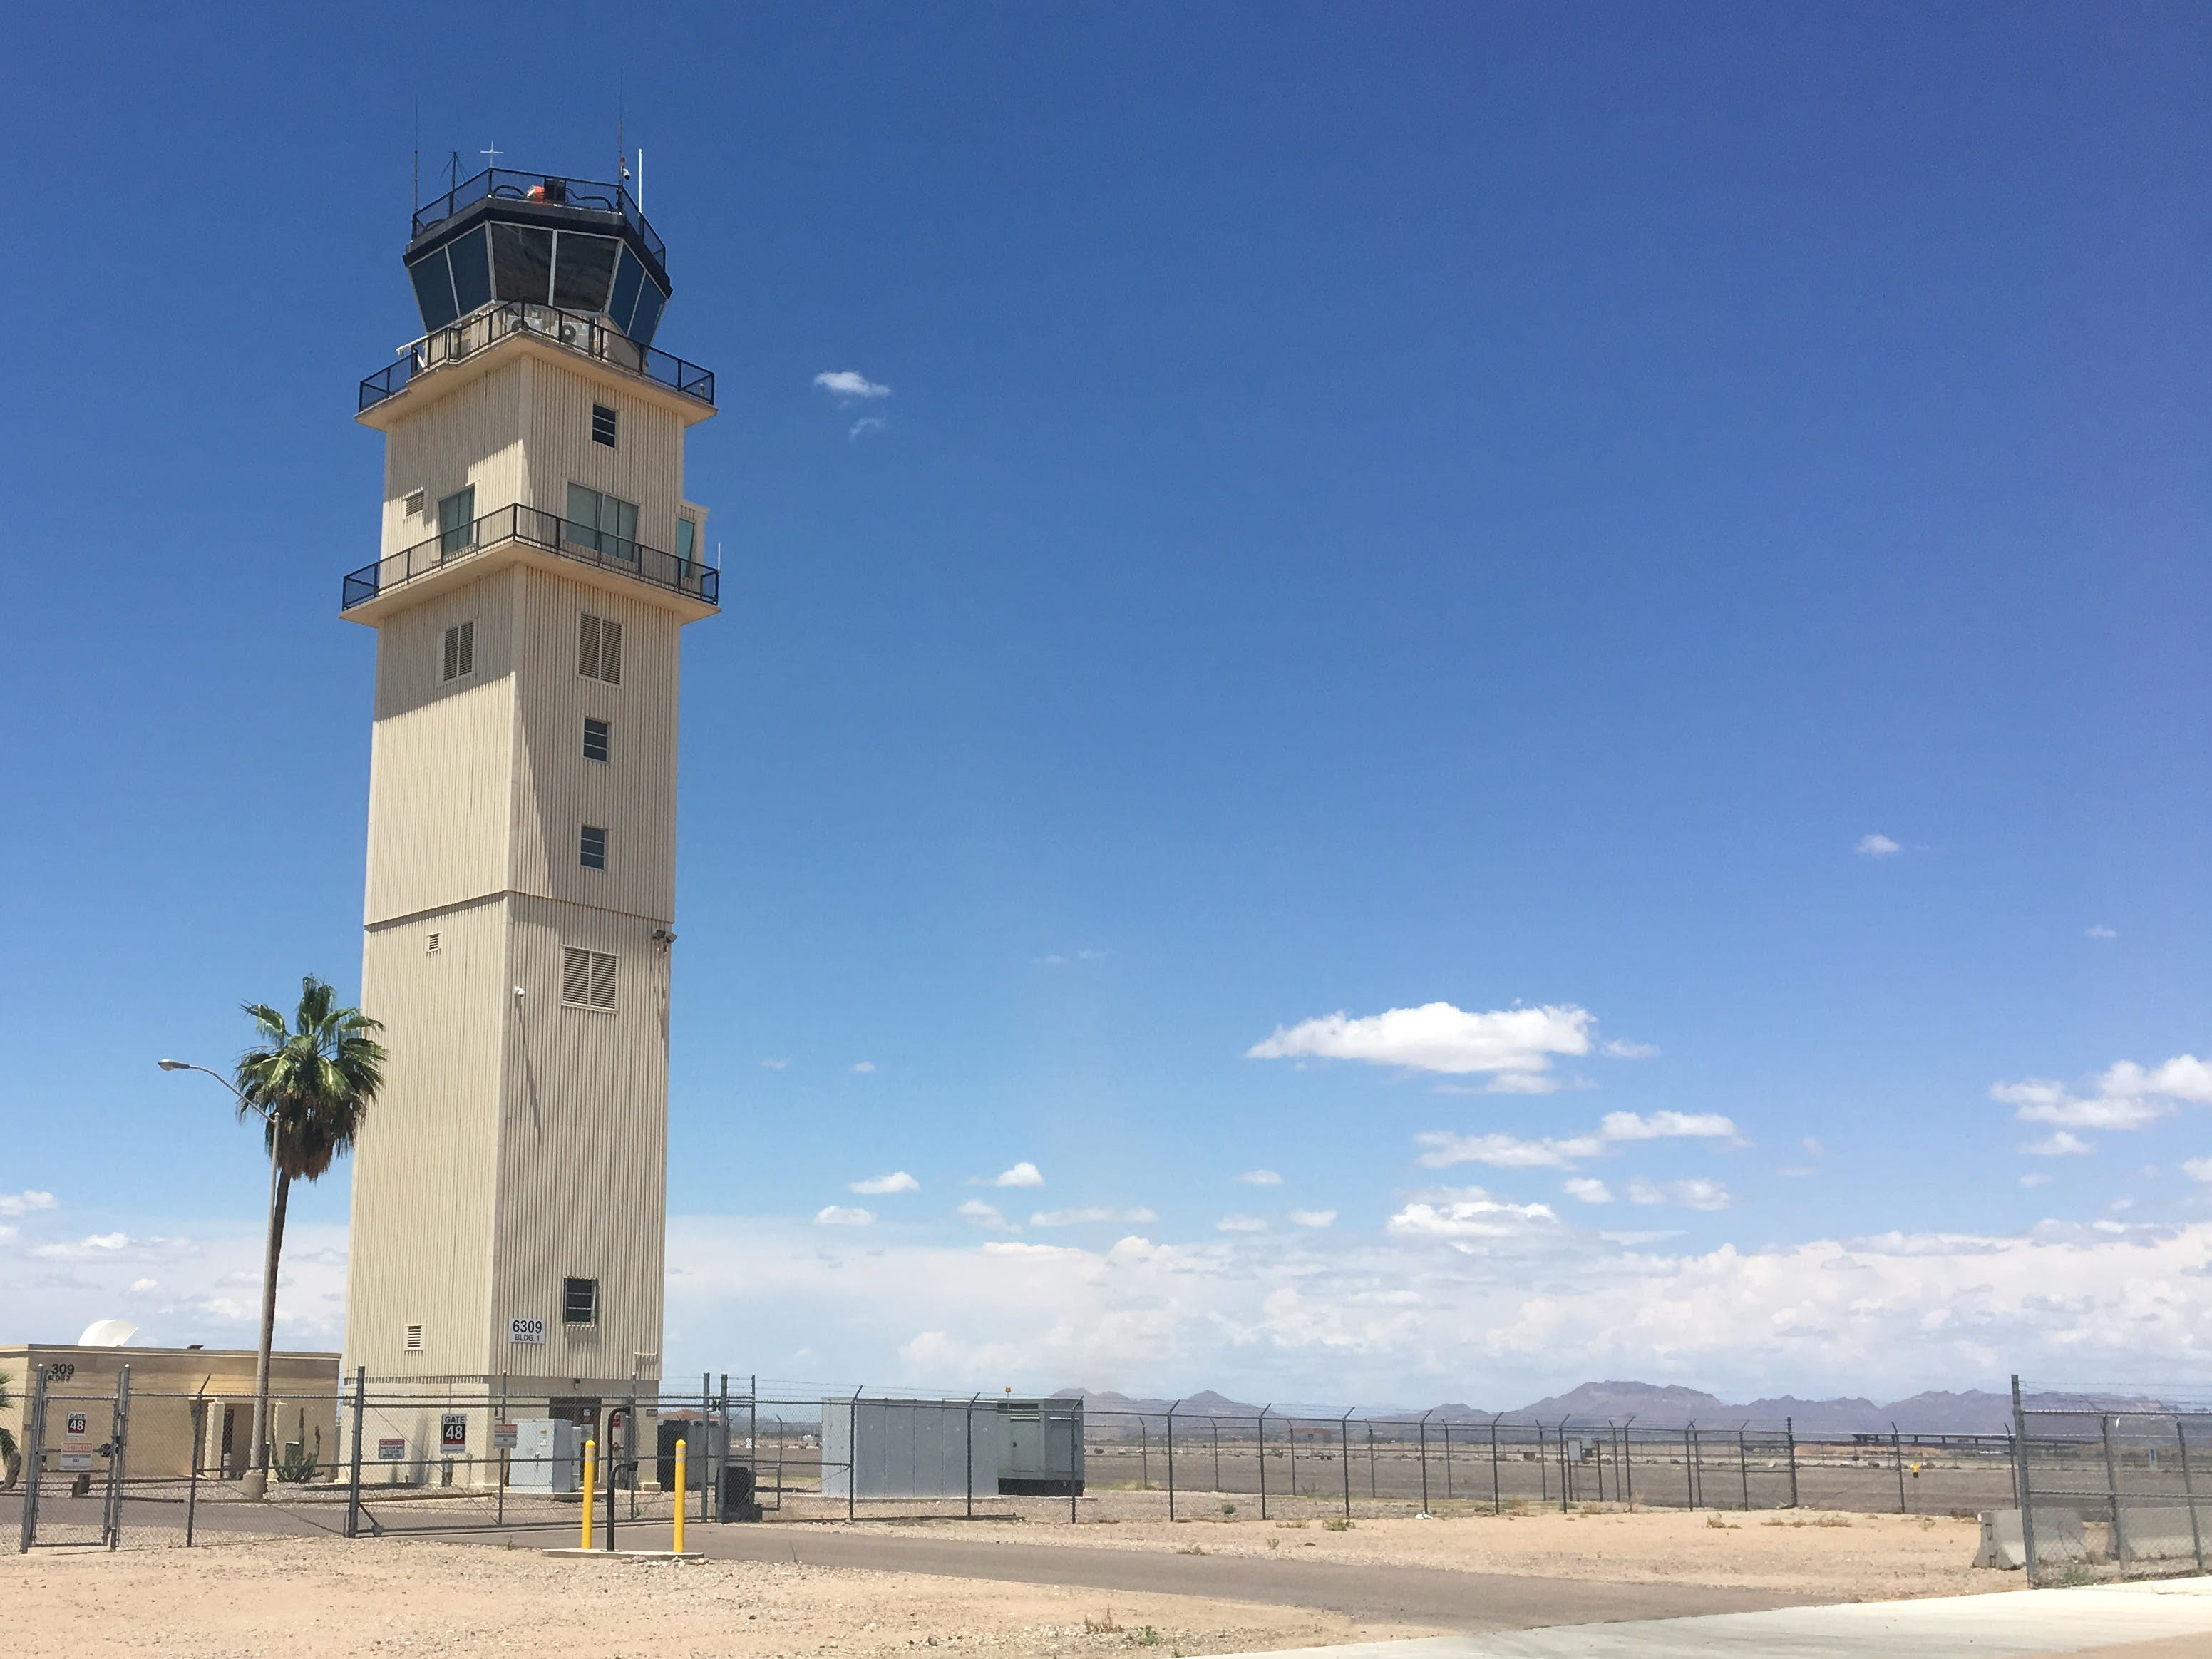 Mesa airport preps for busy spring travel season; lawmakers urge funding for new traffic-control tower